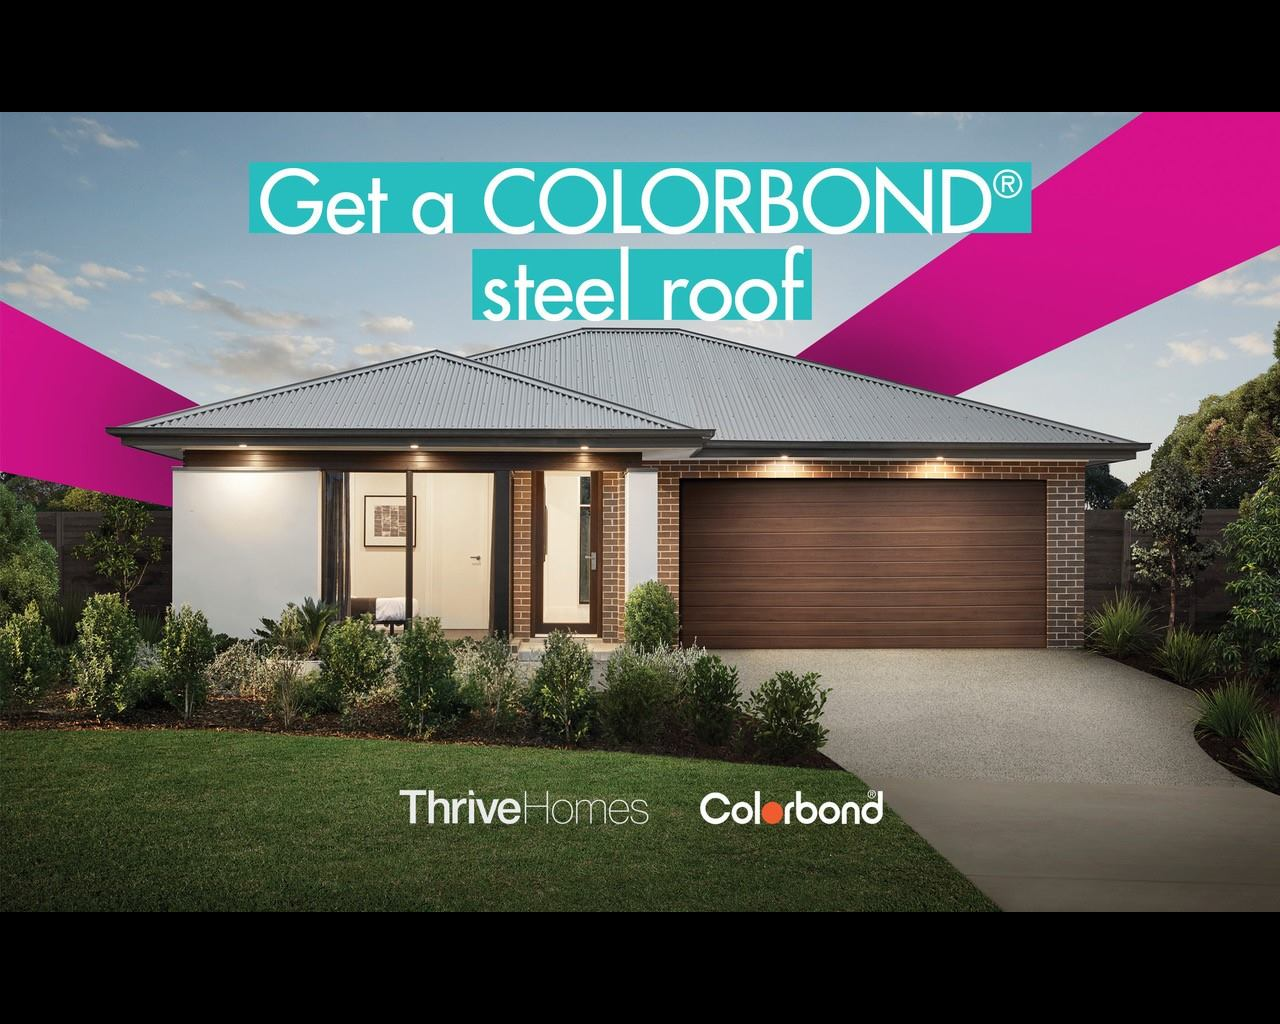 Thrive Homes Colorbond Promotion